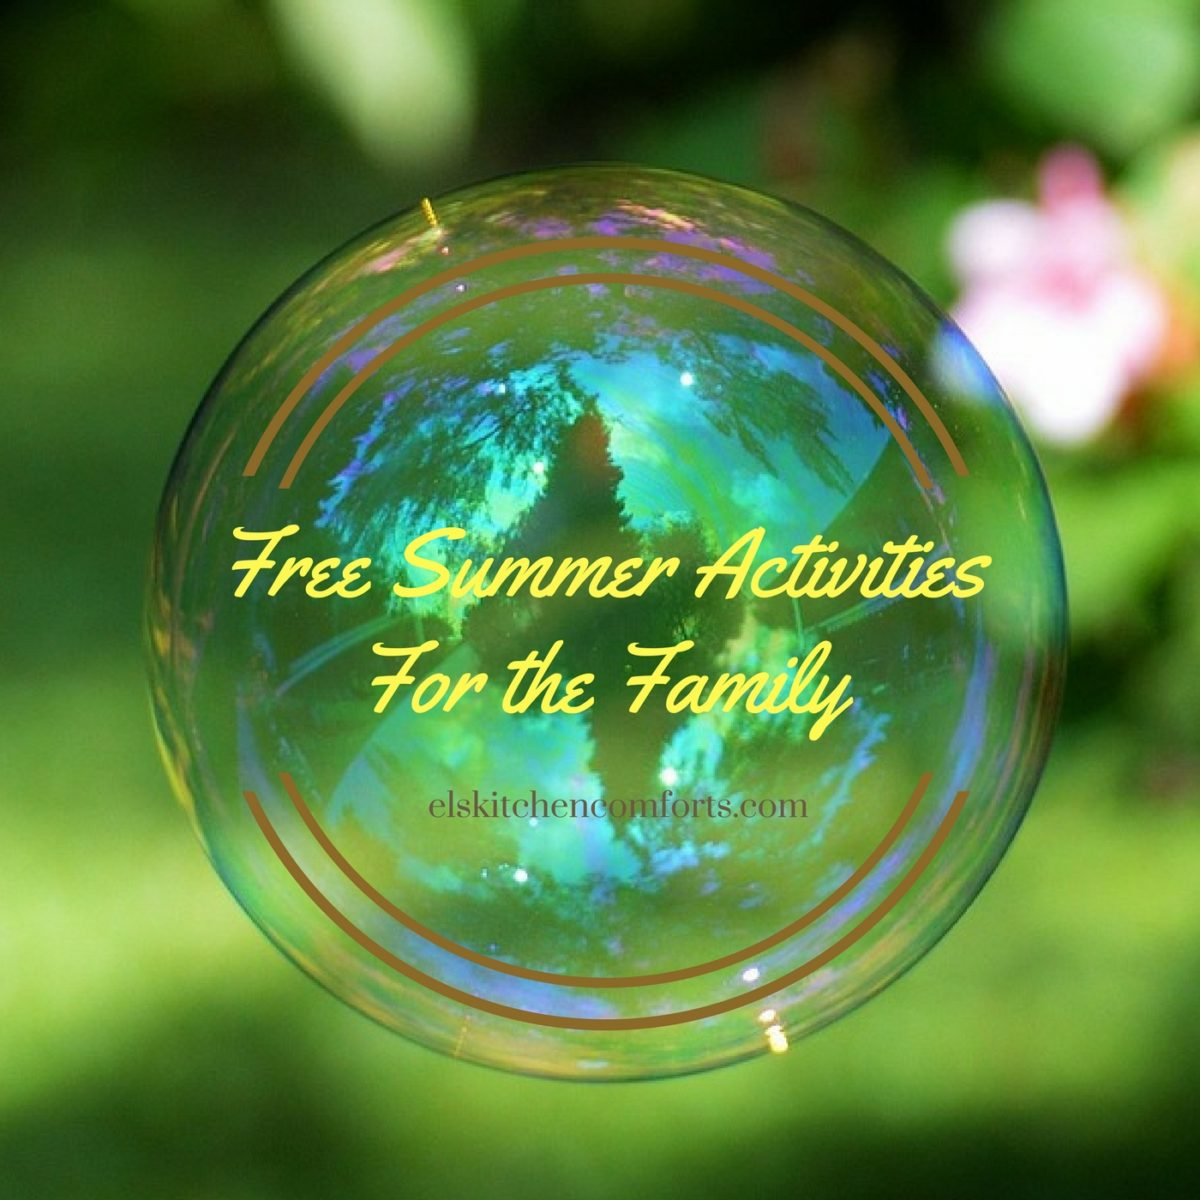 Free Summer Activities for the Family